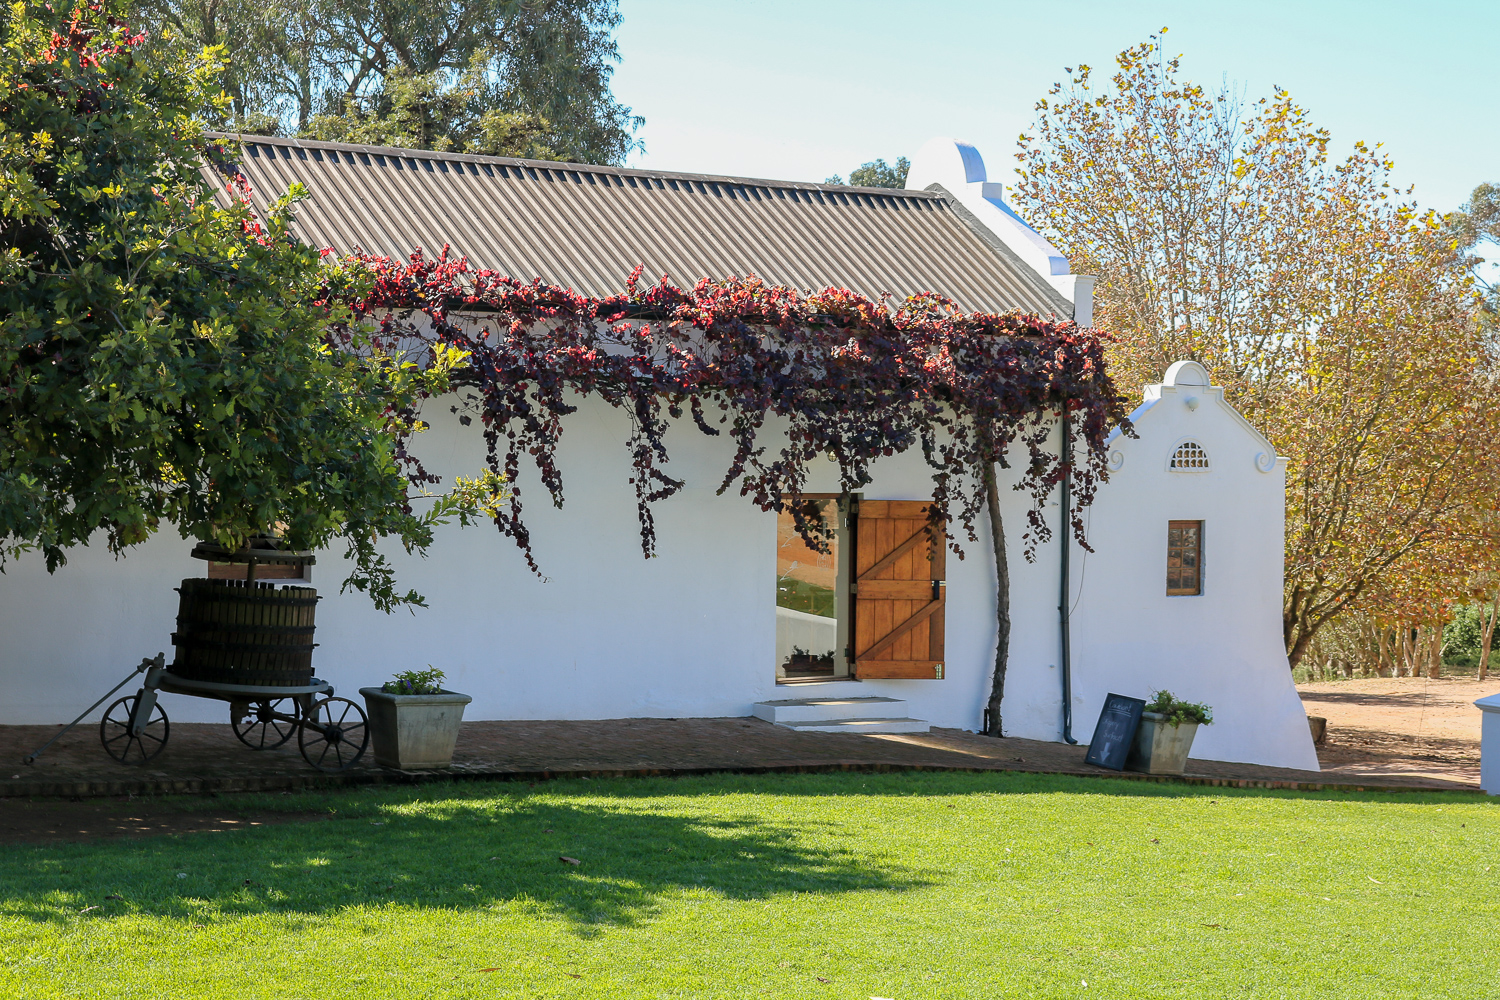 Diemersdal Farm Eatery April 2018